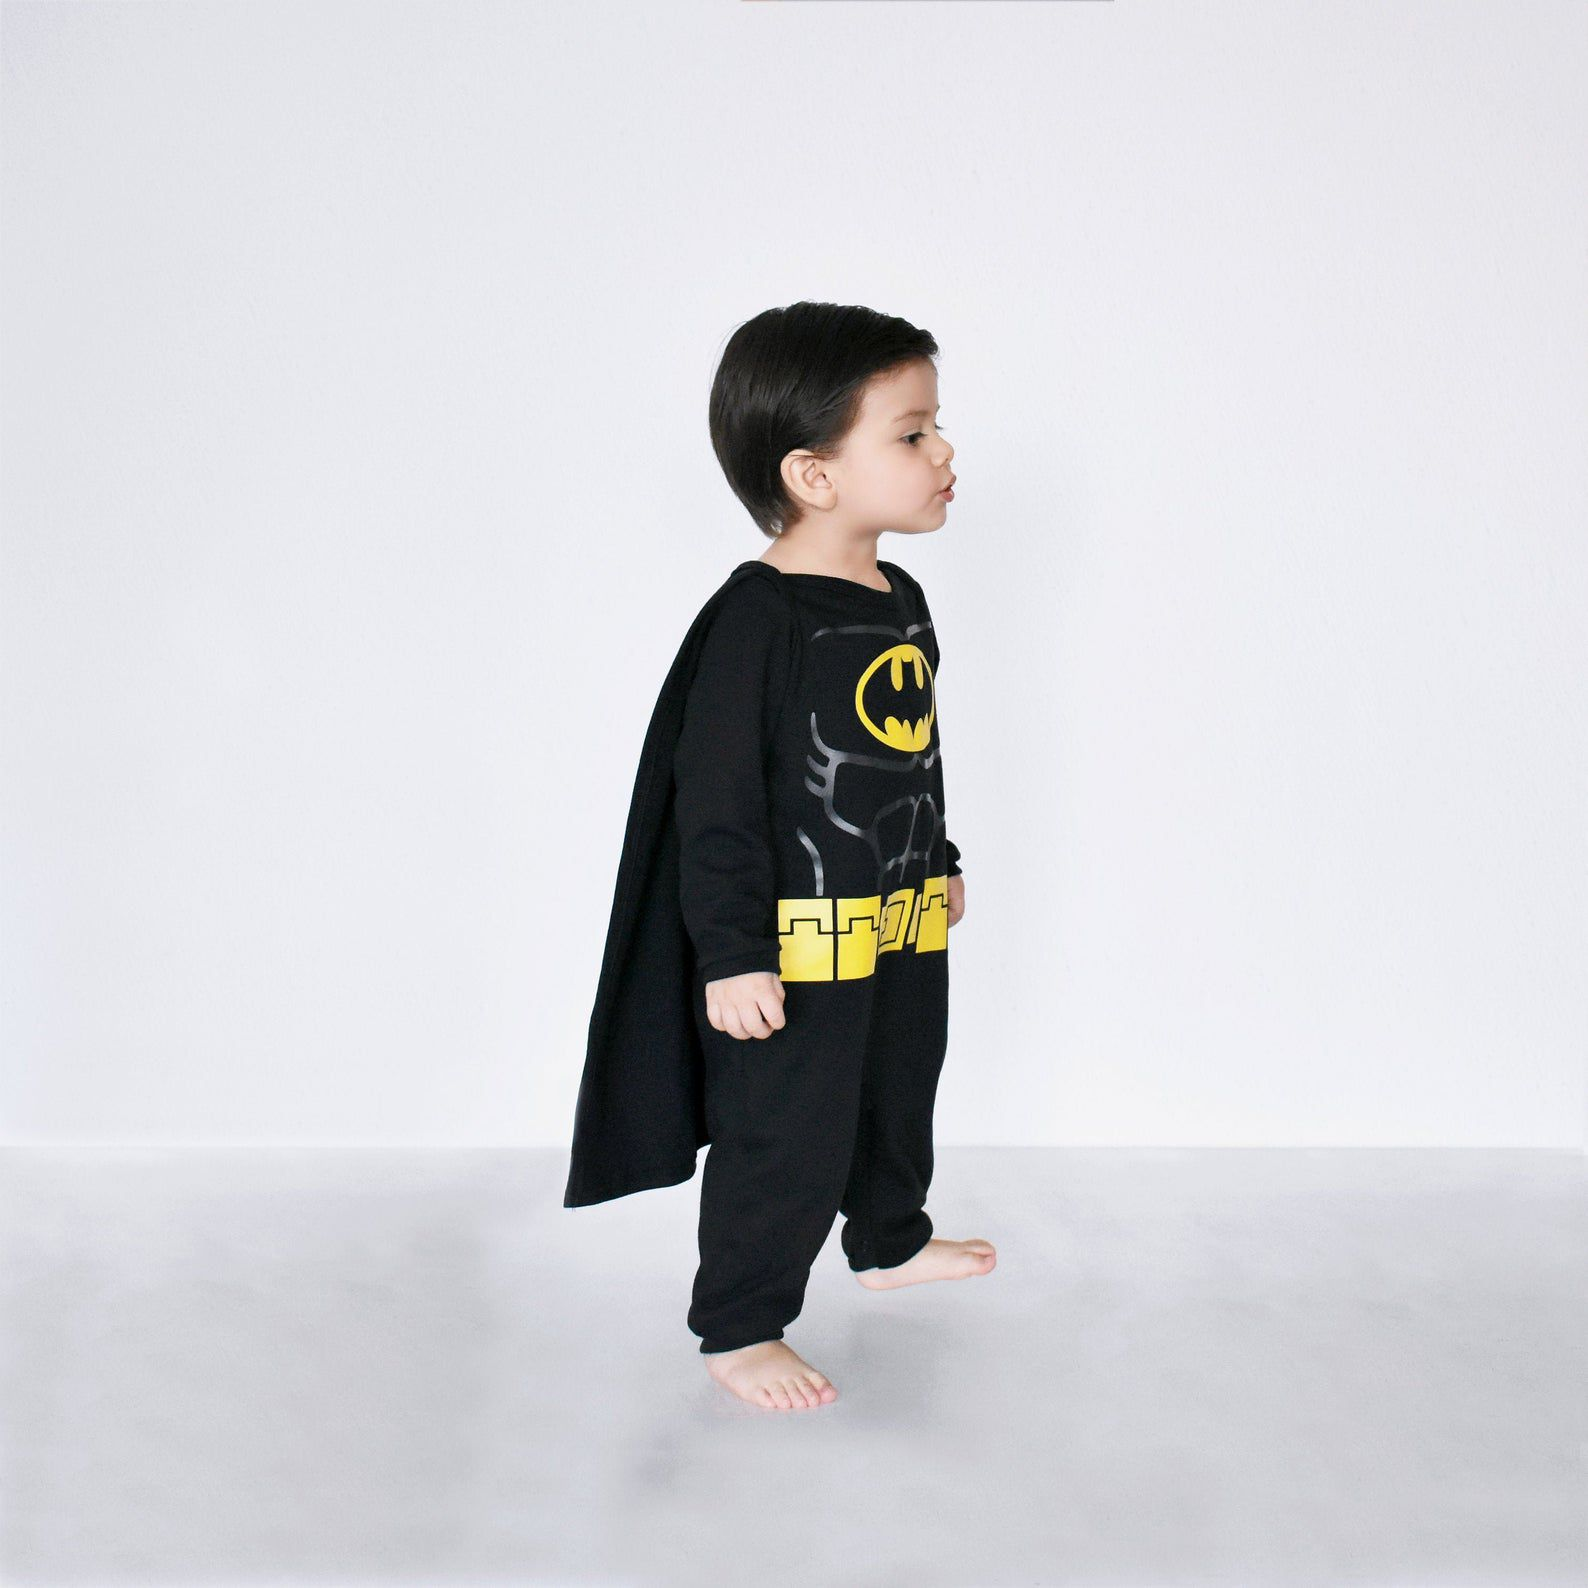 Image of a child in a Batman costume.